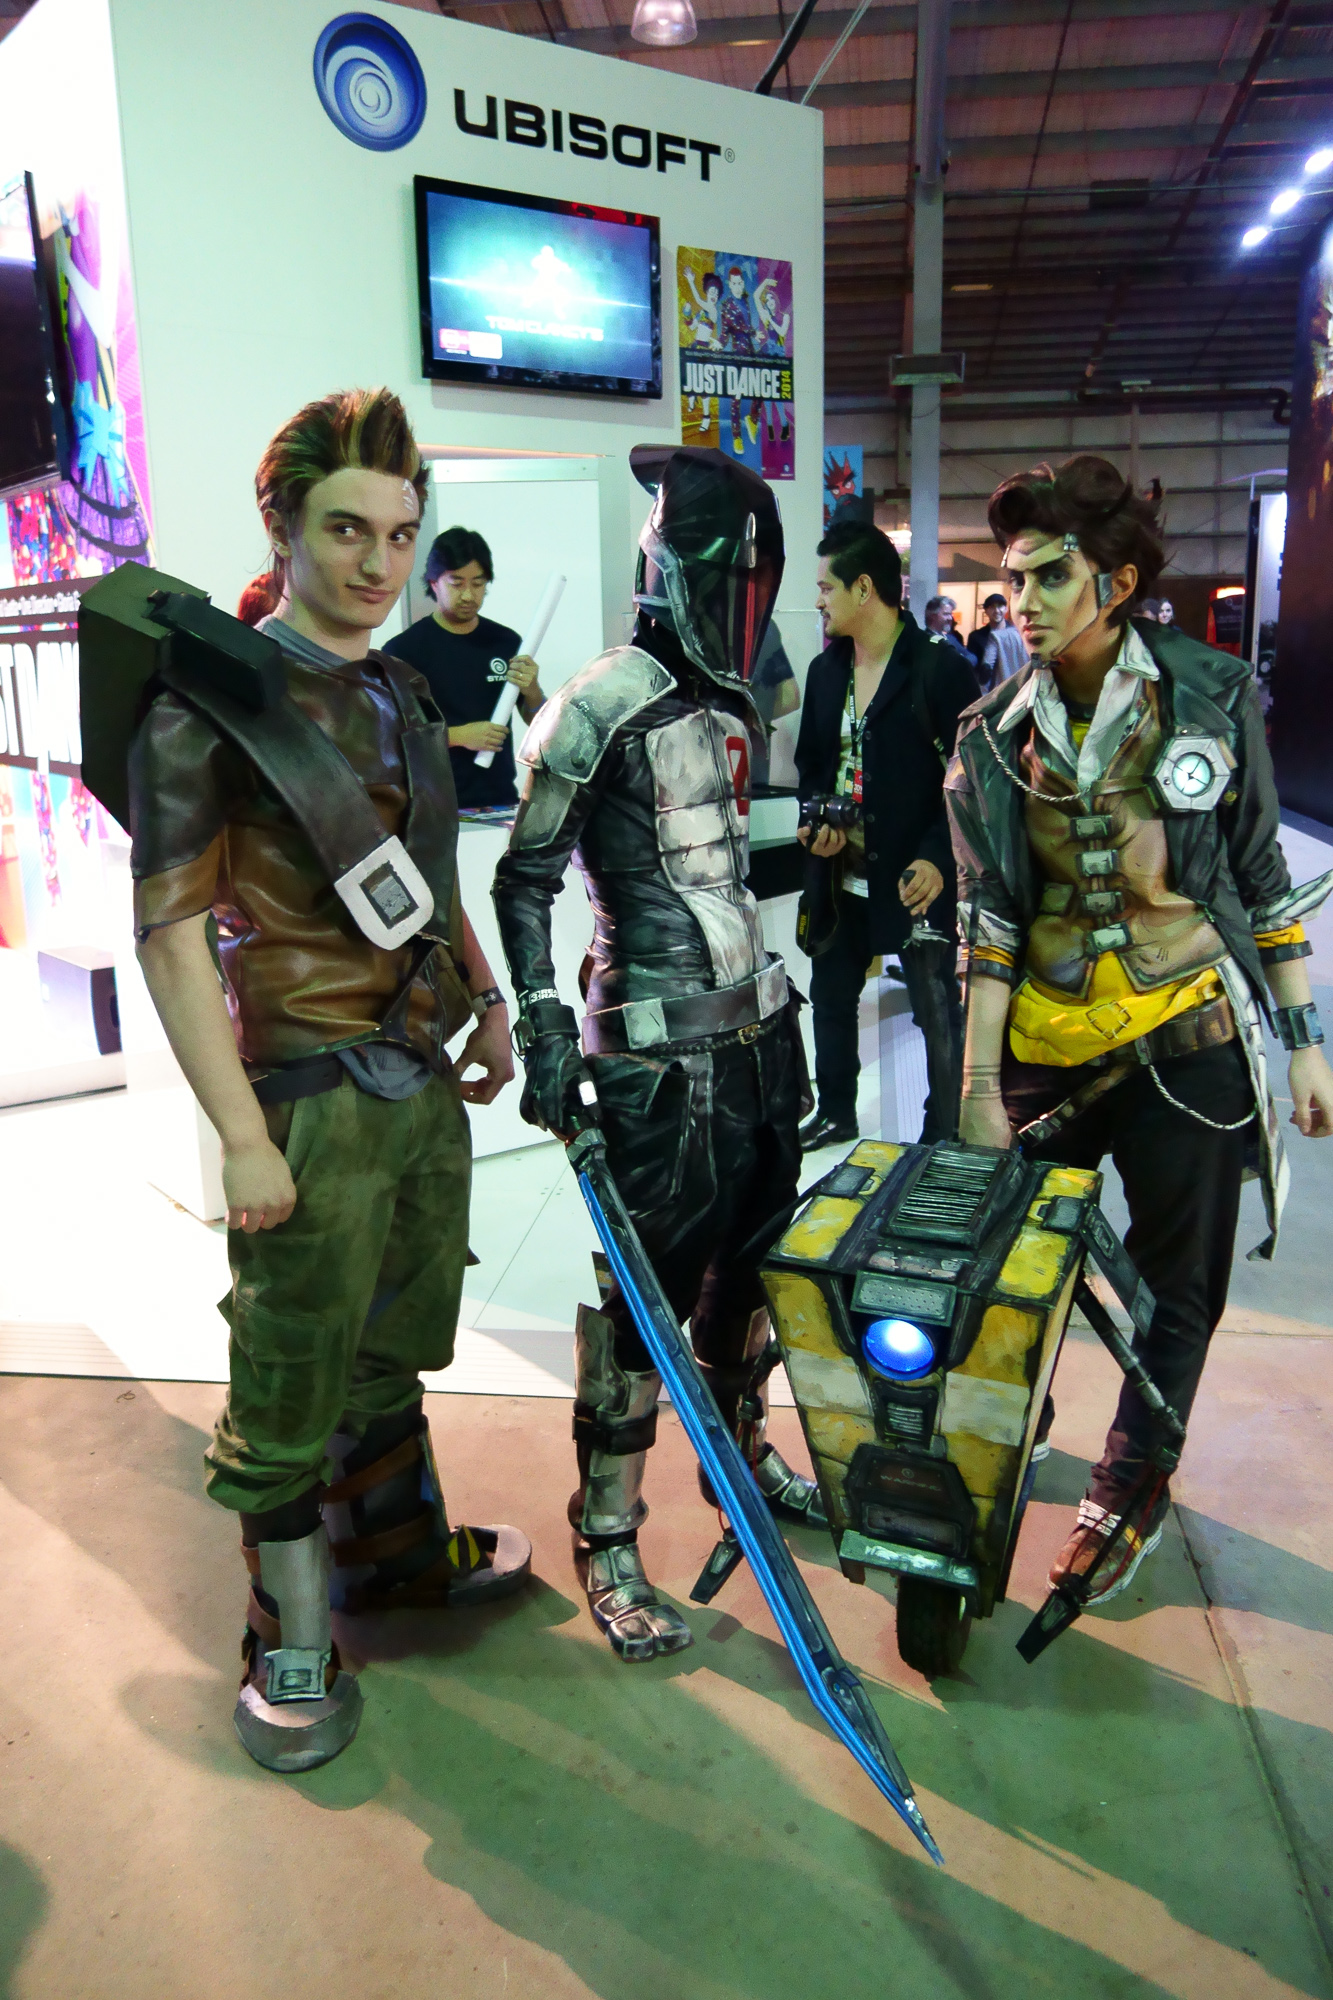 L-R: no idea, zer0 the assassin, claptrap (!), no idea. A lot of the cosplay was like that: either super-obscure stuff, or just interpretations that made deciphering their character hard